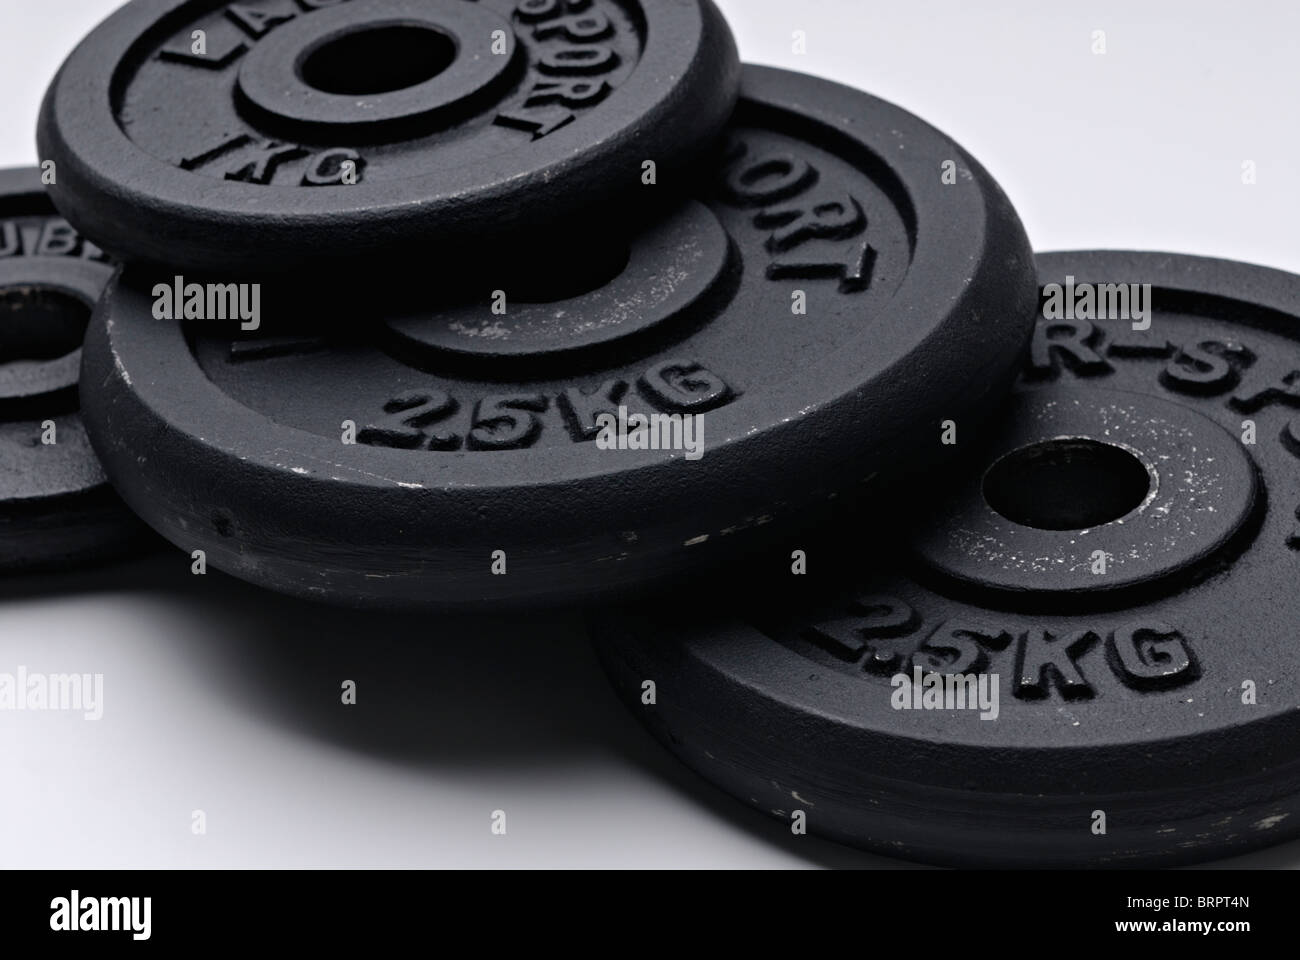 Barbell and plates - Stock Image